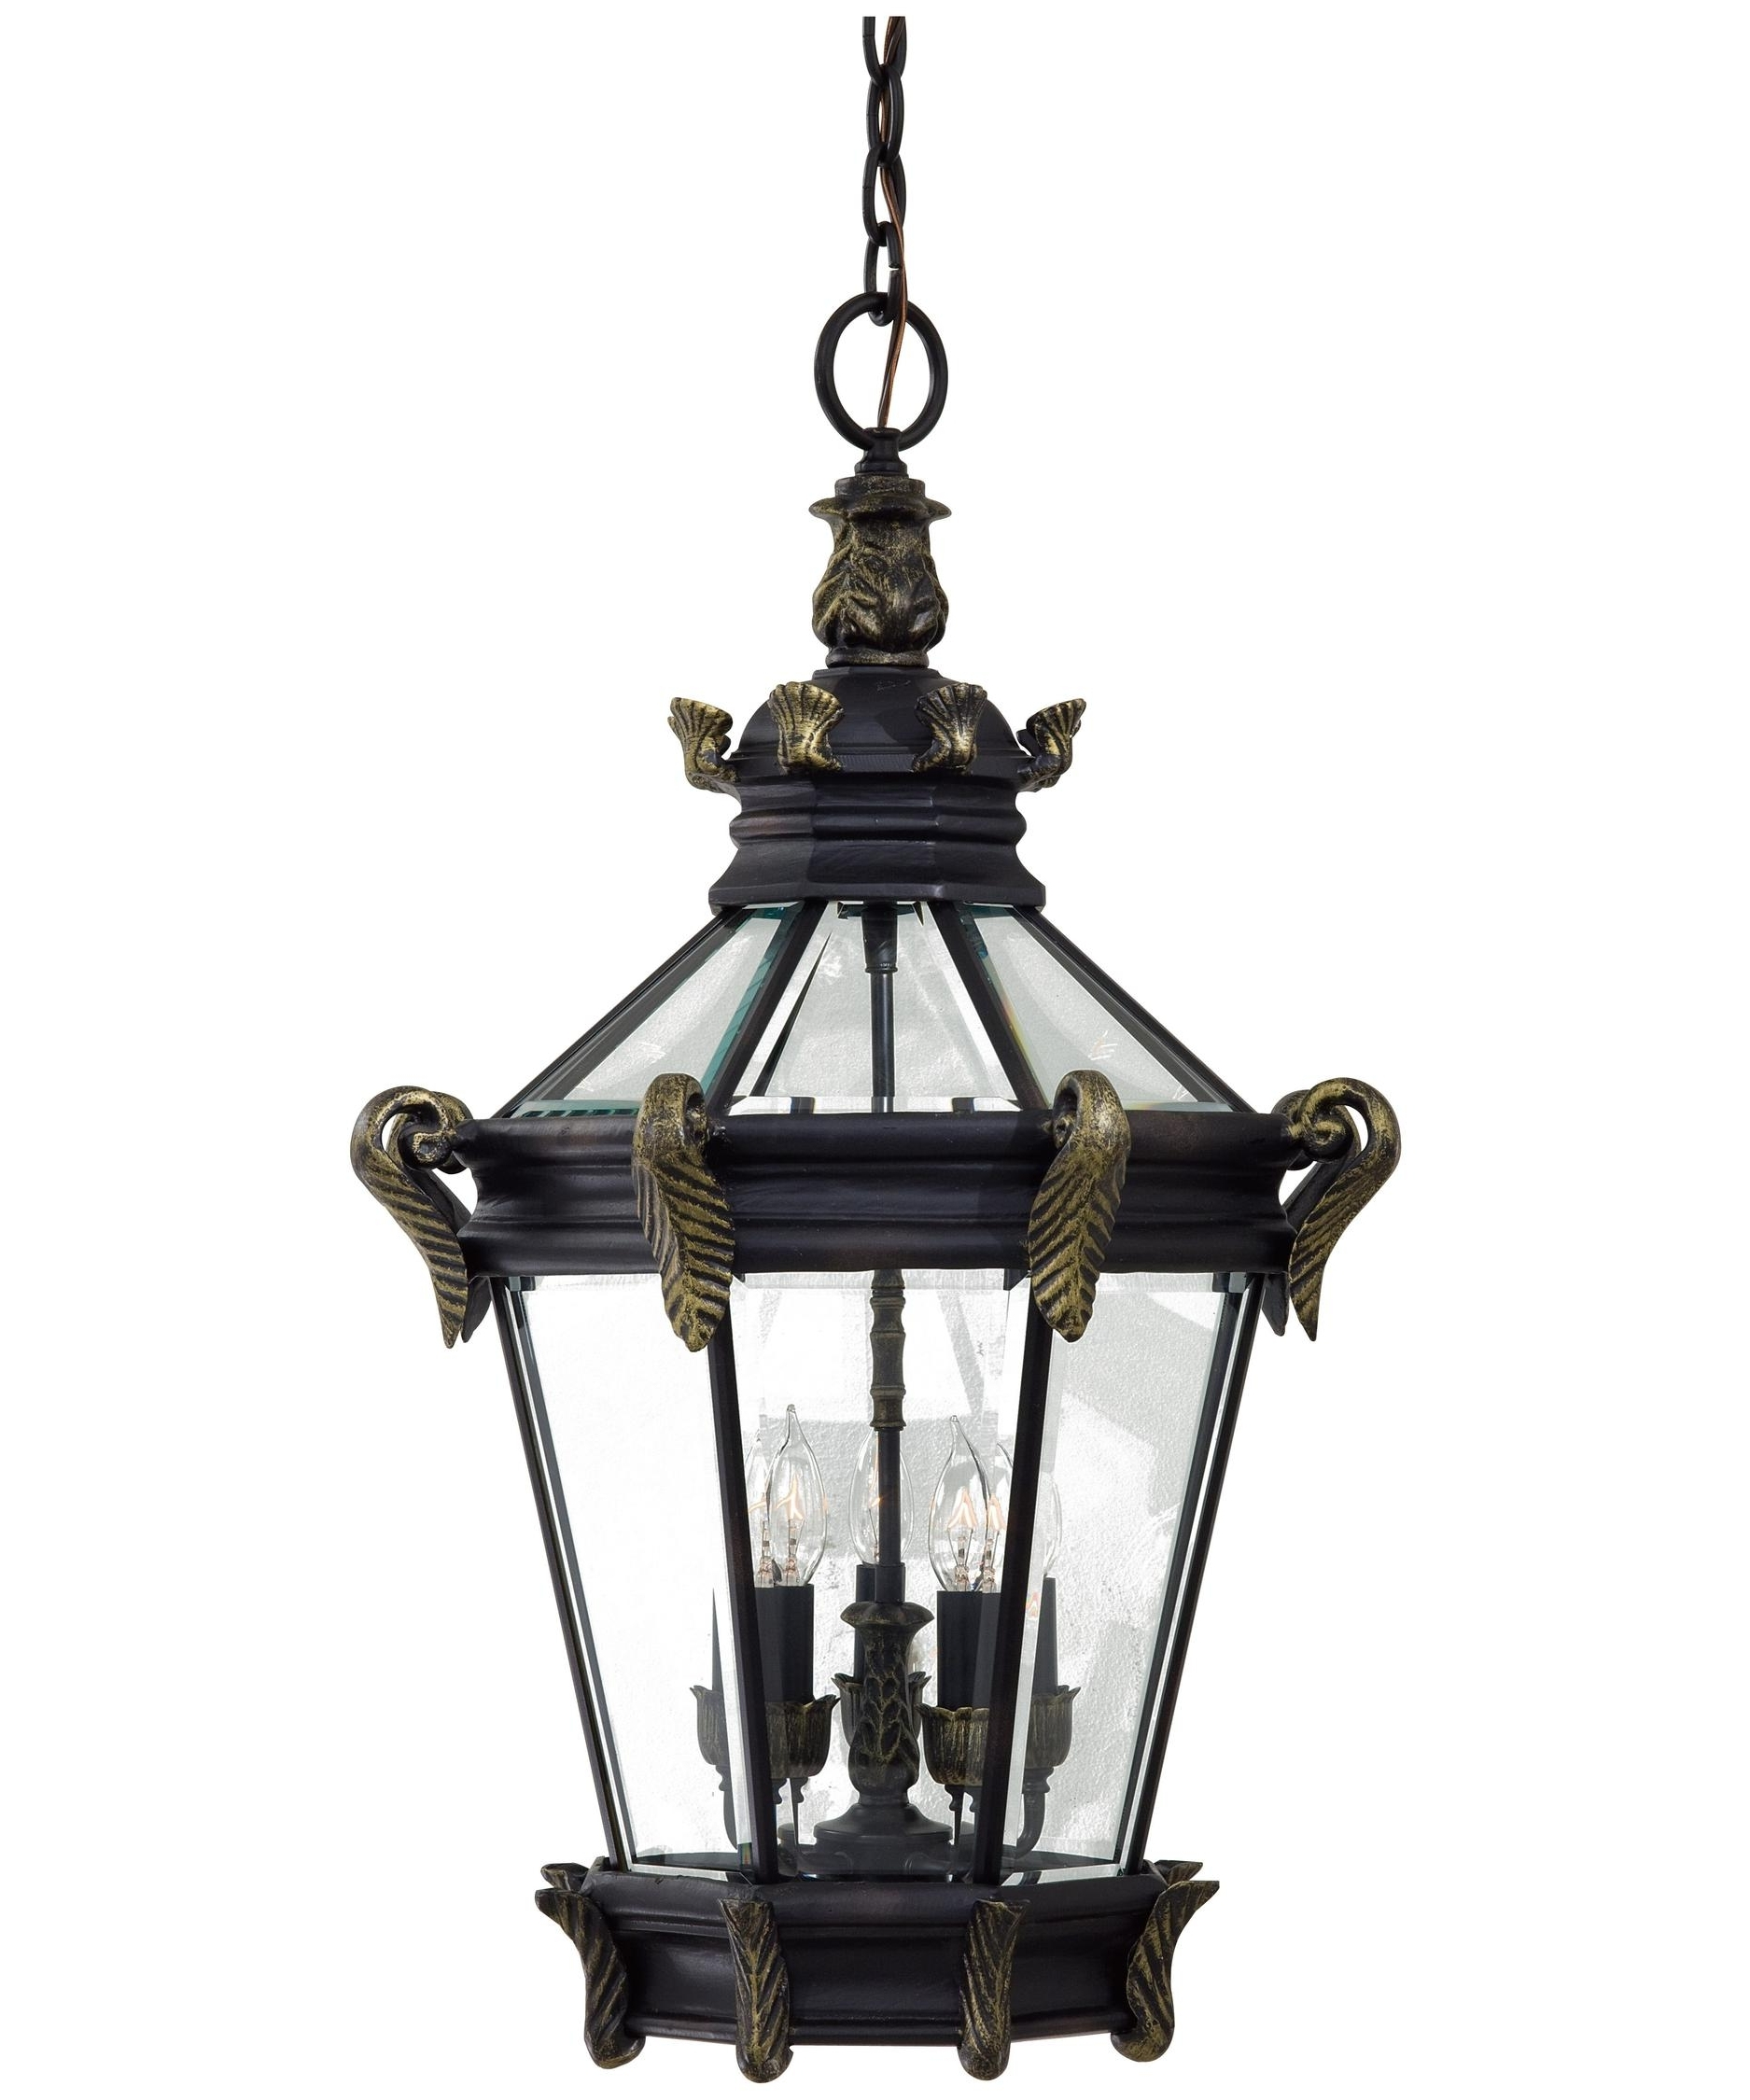 Popular Minka Lavery 8934 Stratford Hall 19 Inch Wide 5 Light Outdoor For Outdoor Ceiling Hanging Lights (View 8 of 20)